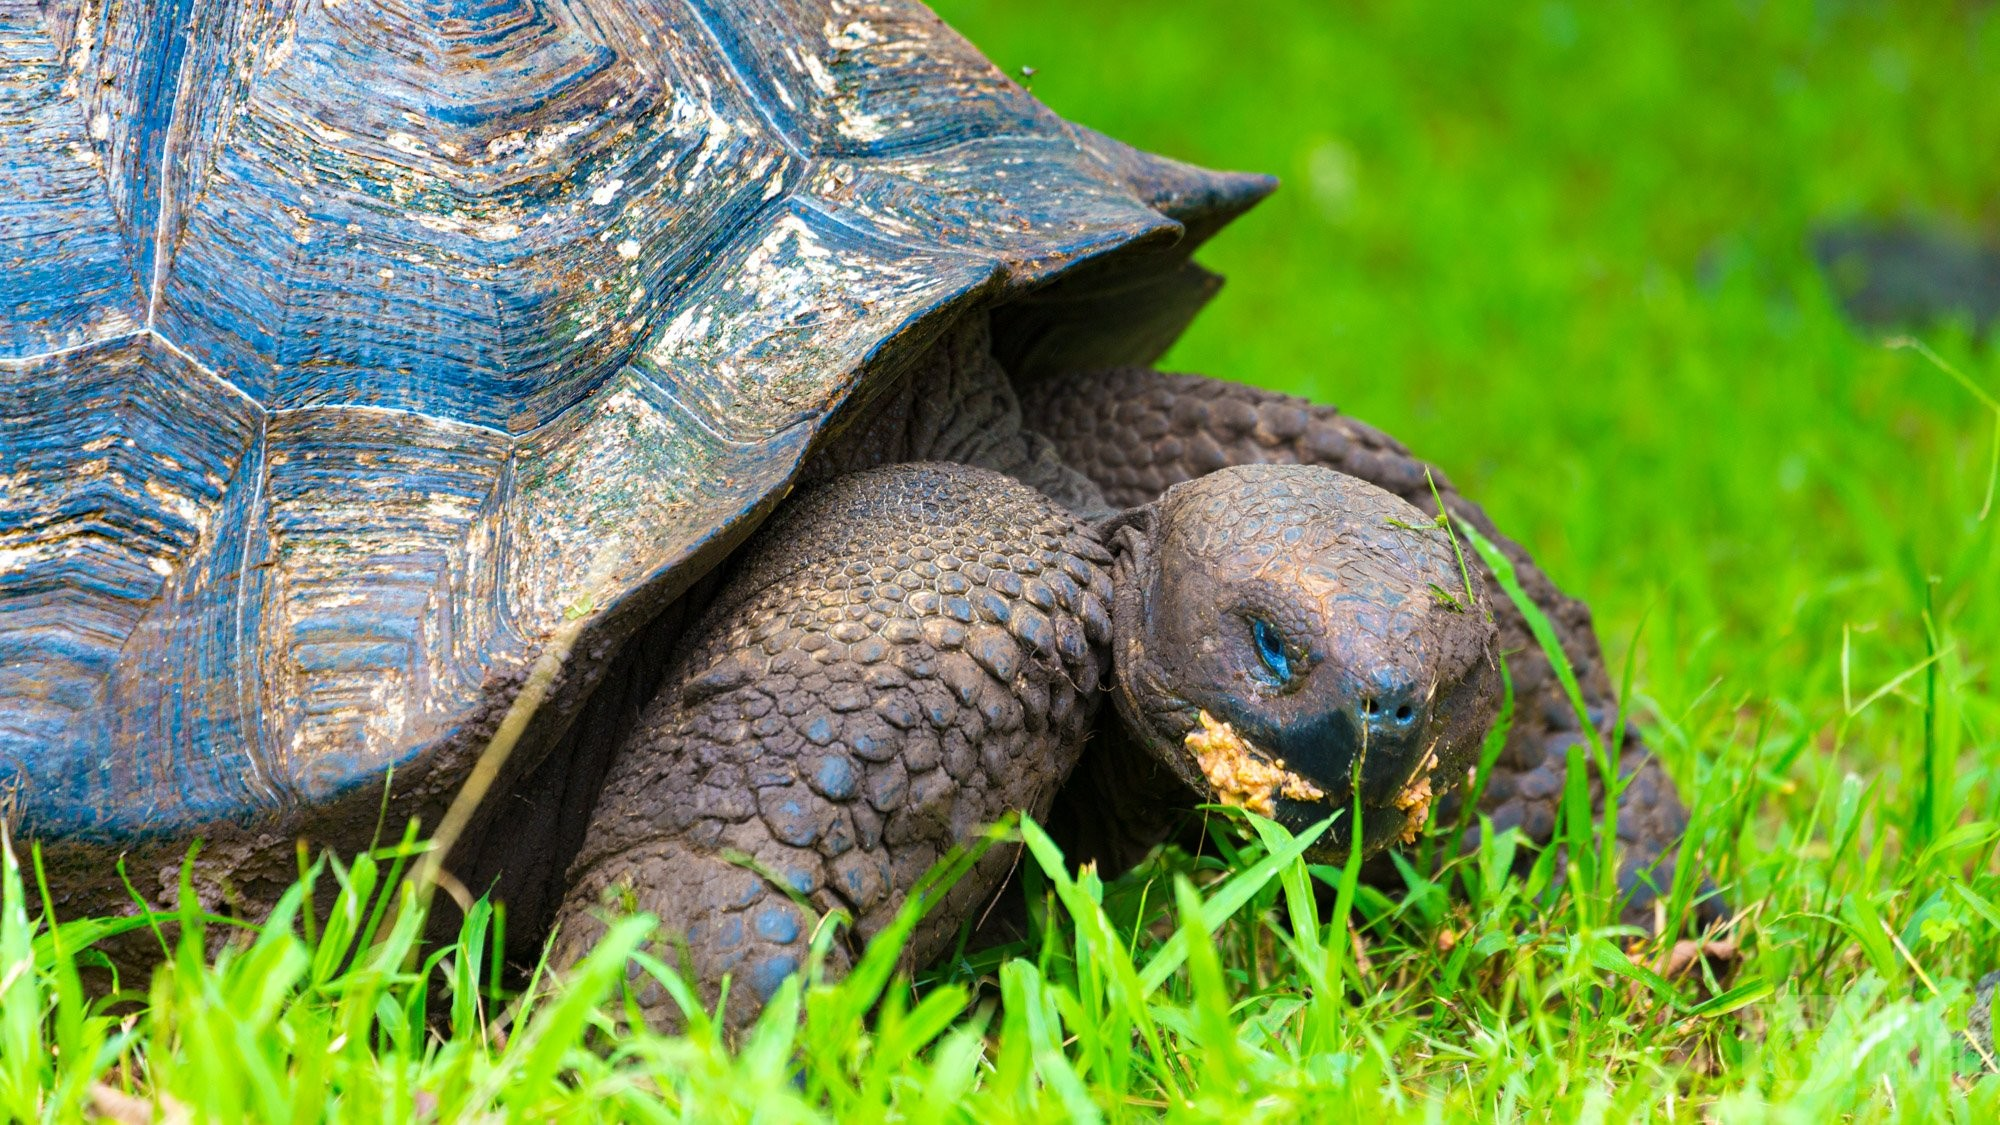 Giant tortoise of the Galapagos in Ecuador